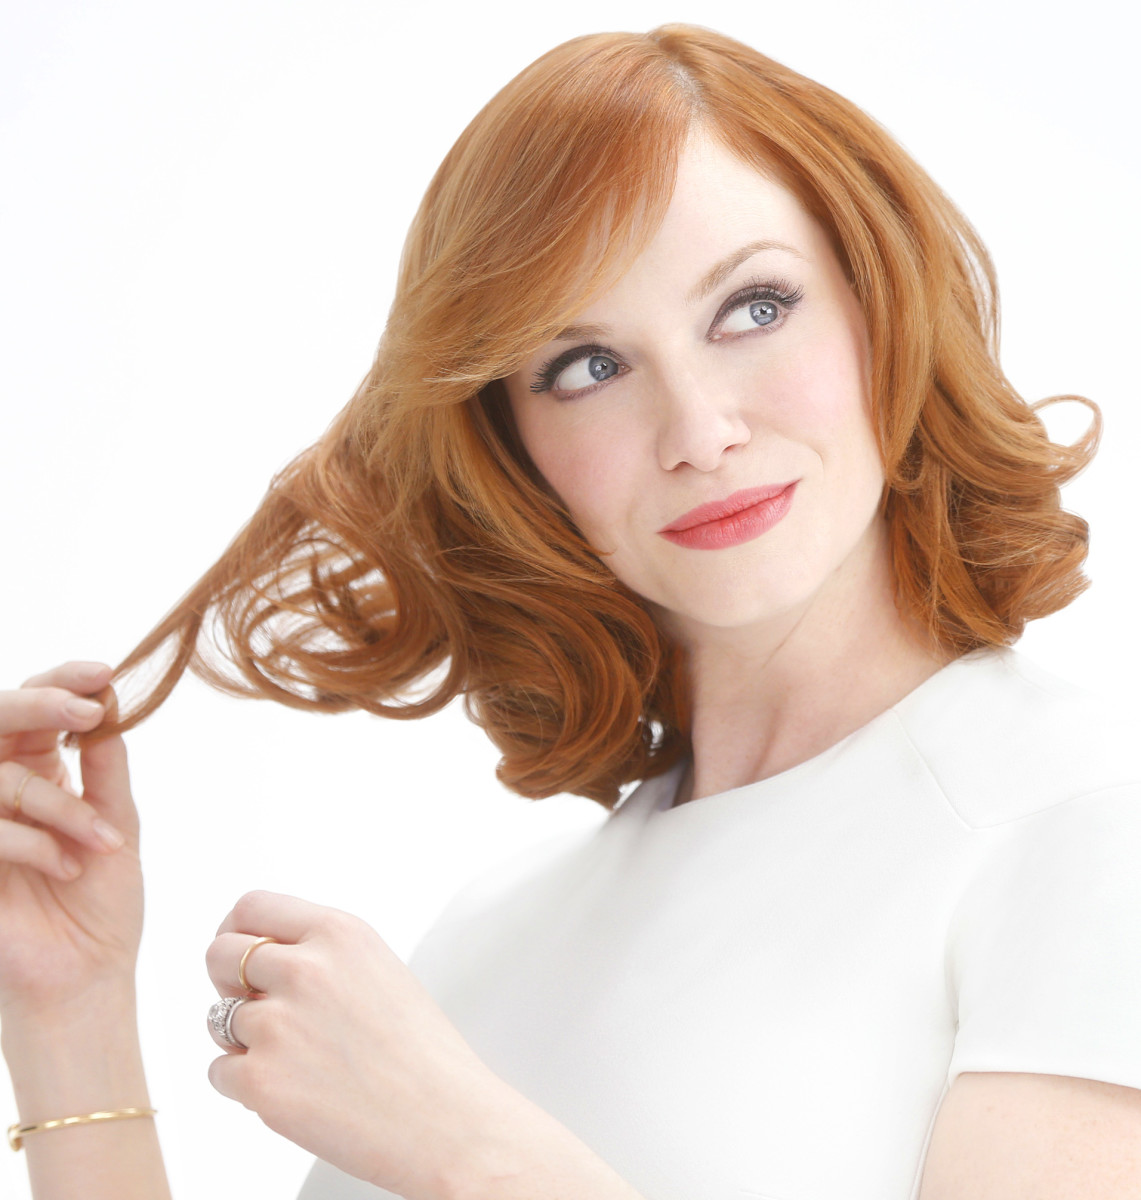 Christina Hendricks for the Clairol Nice 'n Easy #shiftashade campaign